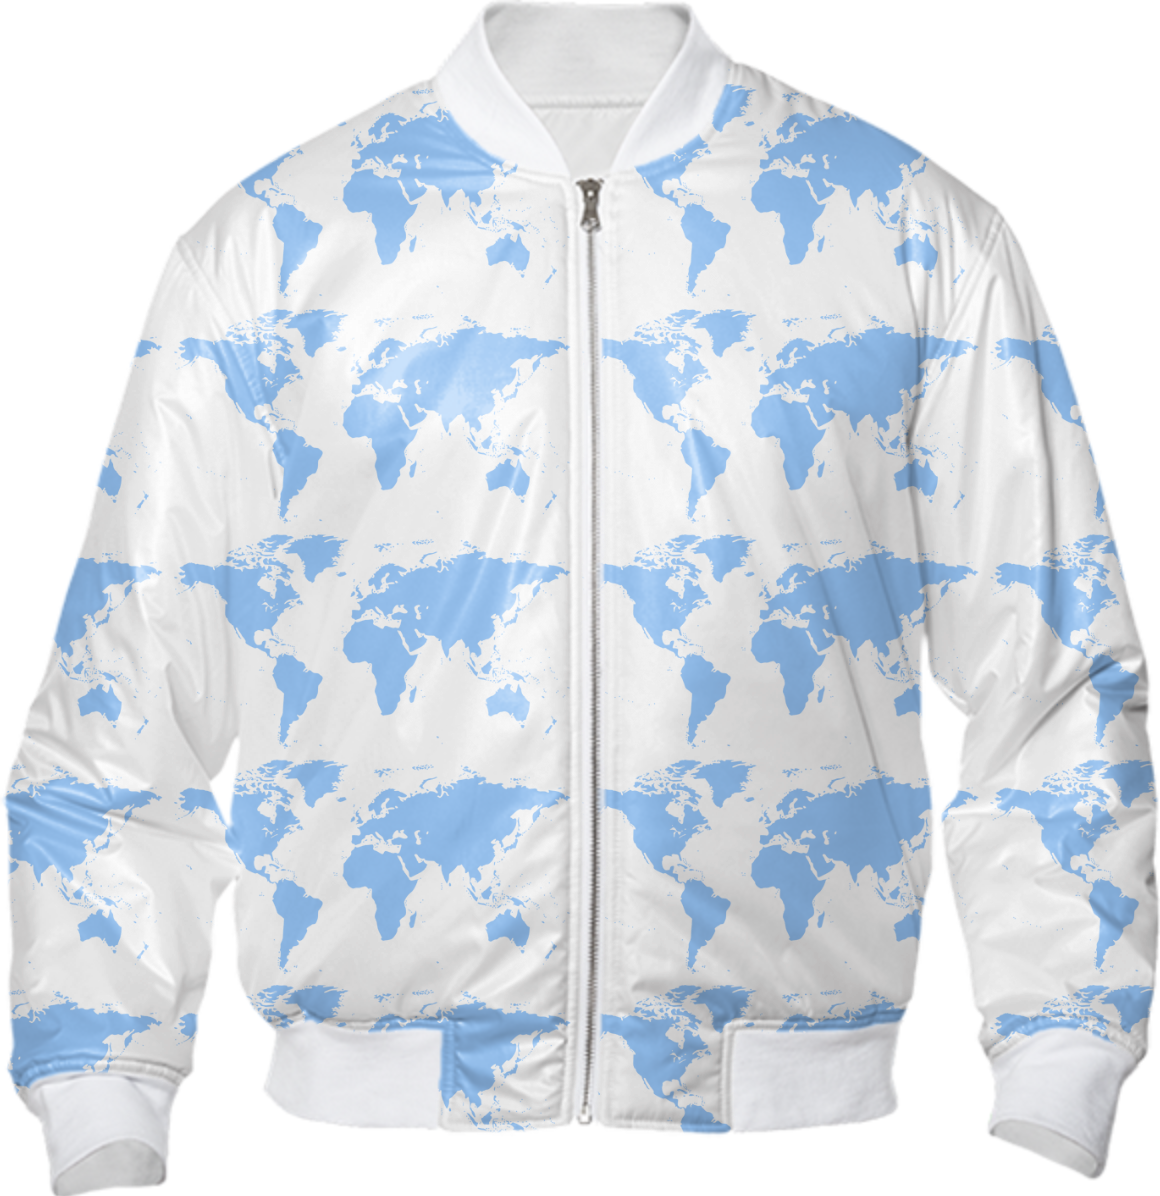 Shop blue world map pattern bomber jacket bomber jacket by elsewhere shop blue world map pattern bomber jacket bomber jacket by elsewhere print all over me gumiabroncs Image collections